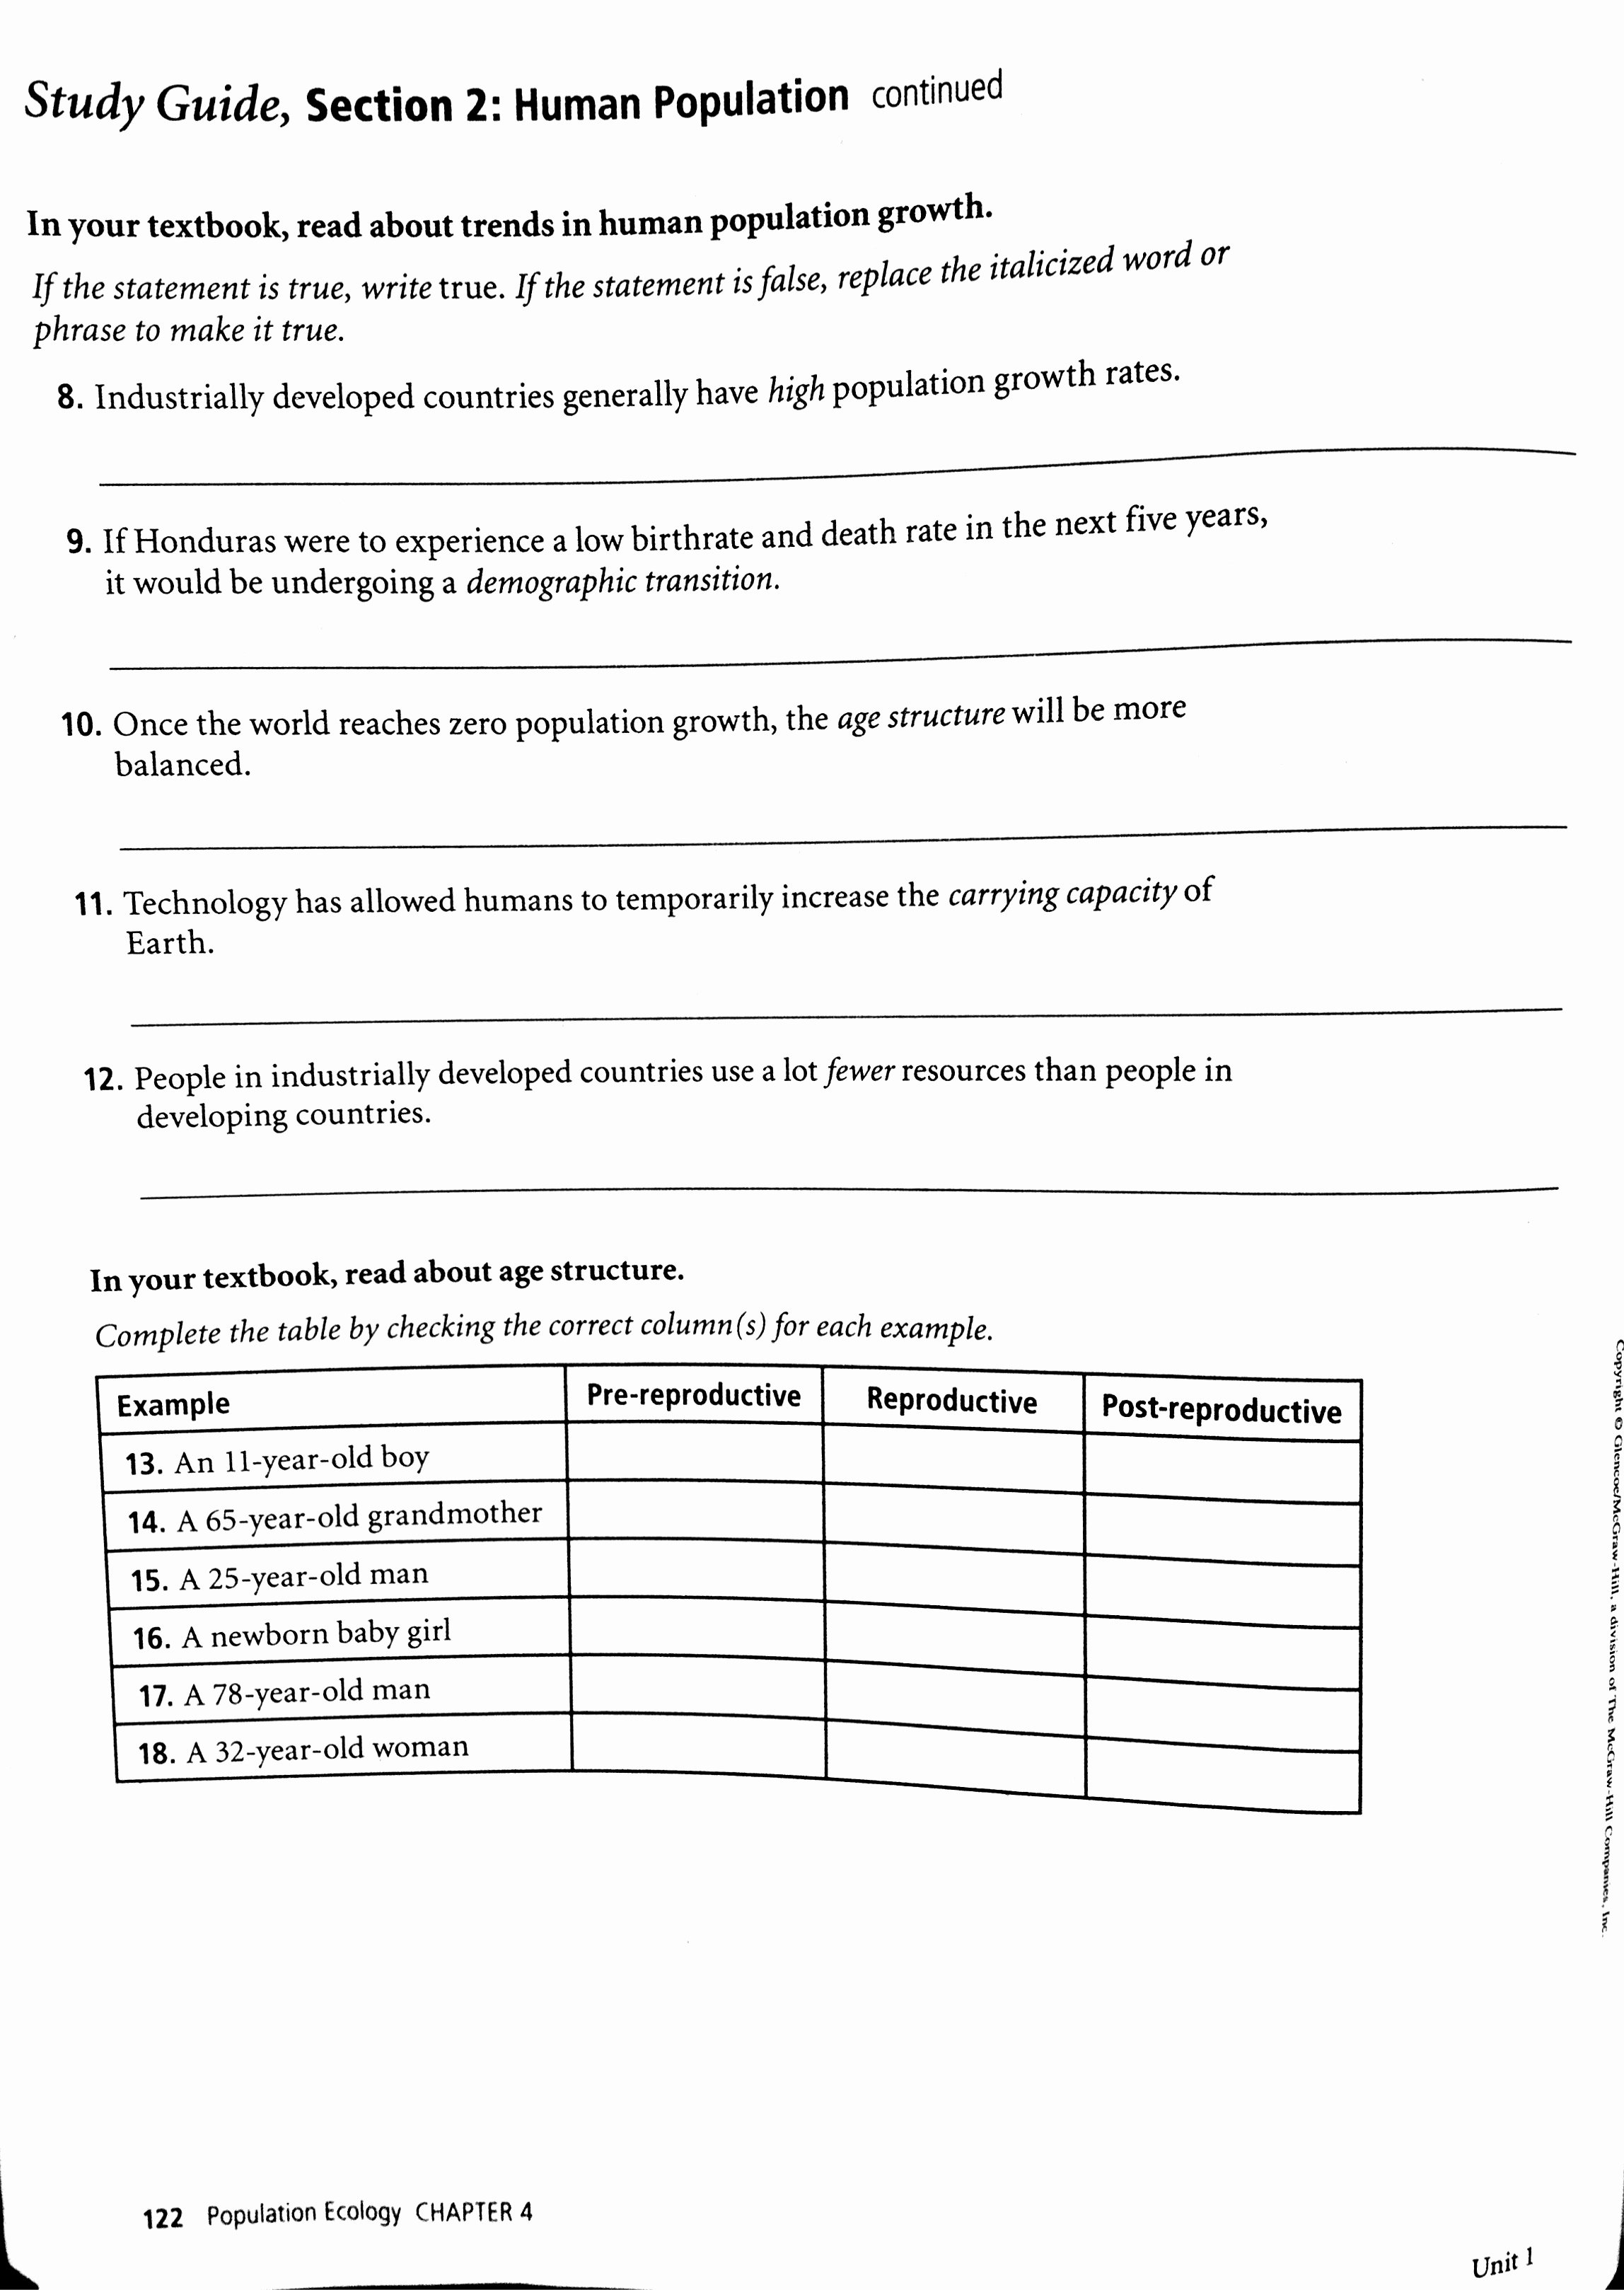 Human Population Growth Worksheet Inspirational Worksheet Human Population Growth Worksheet Grass Fedjp